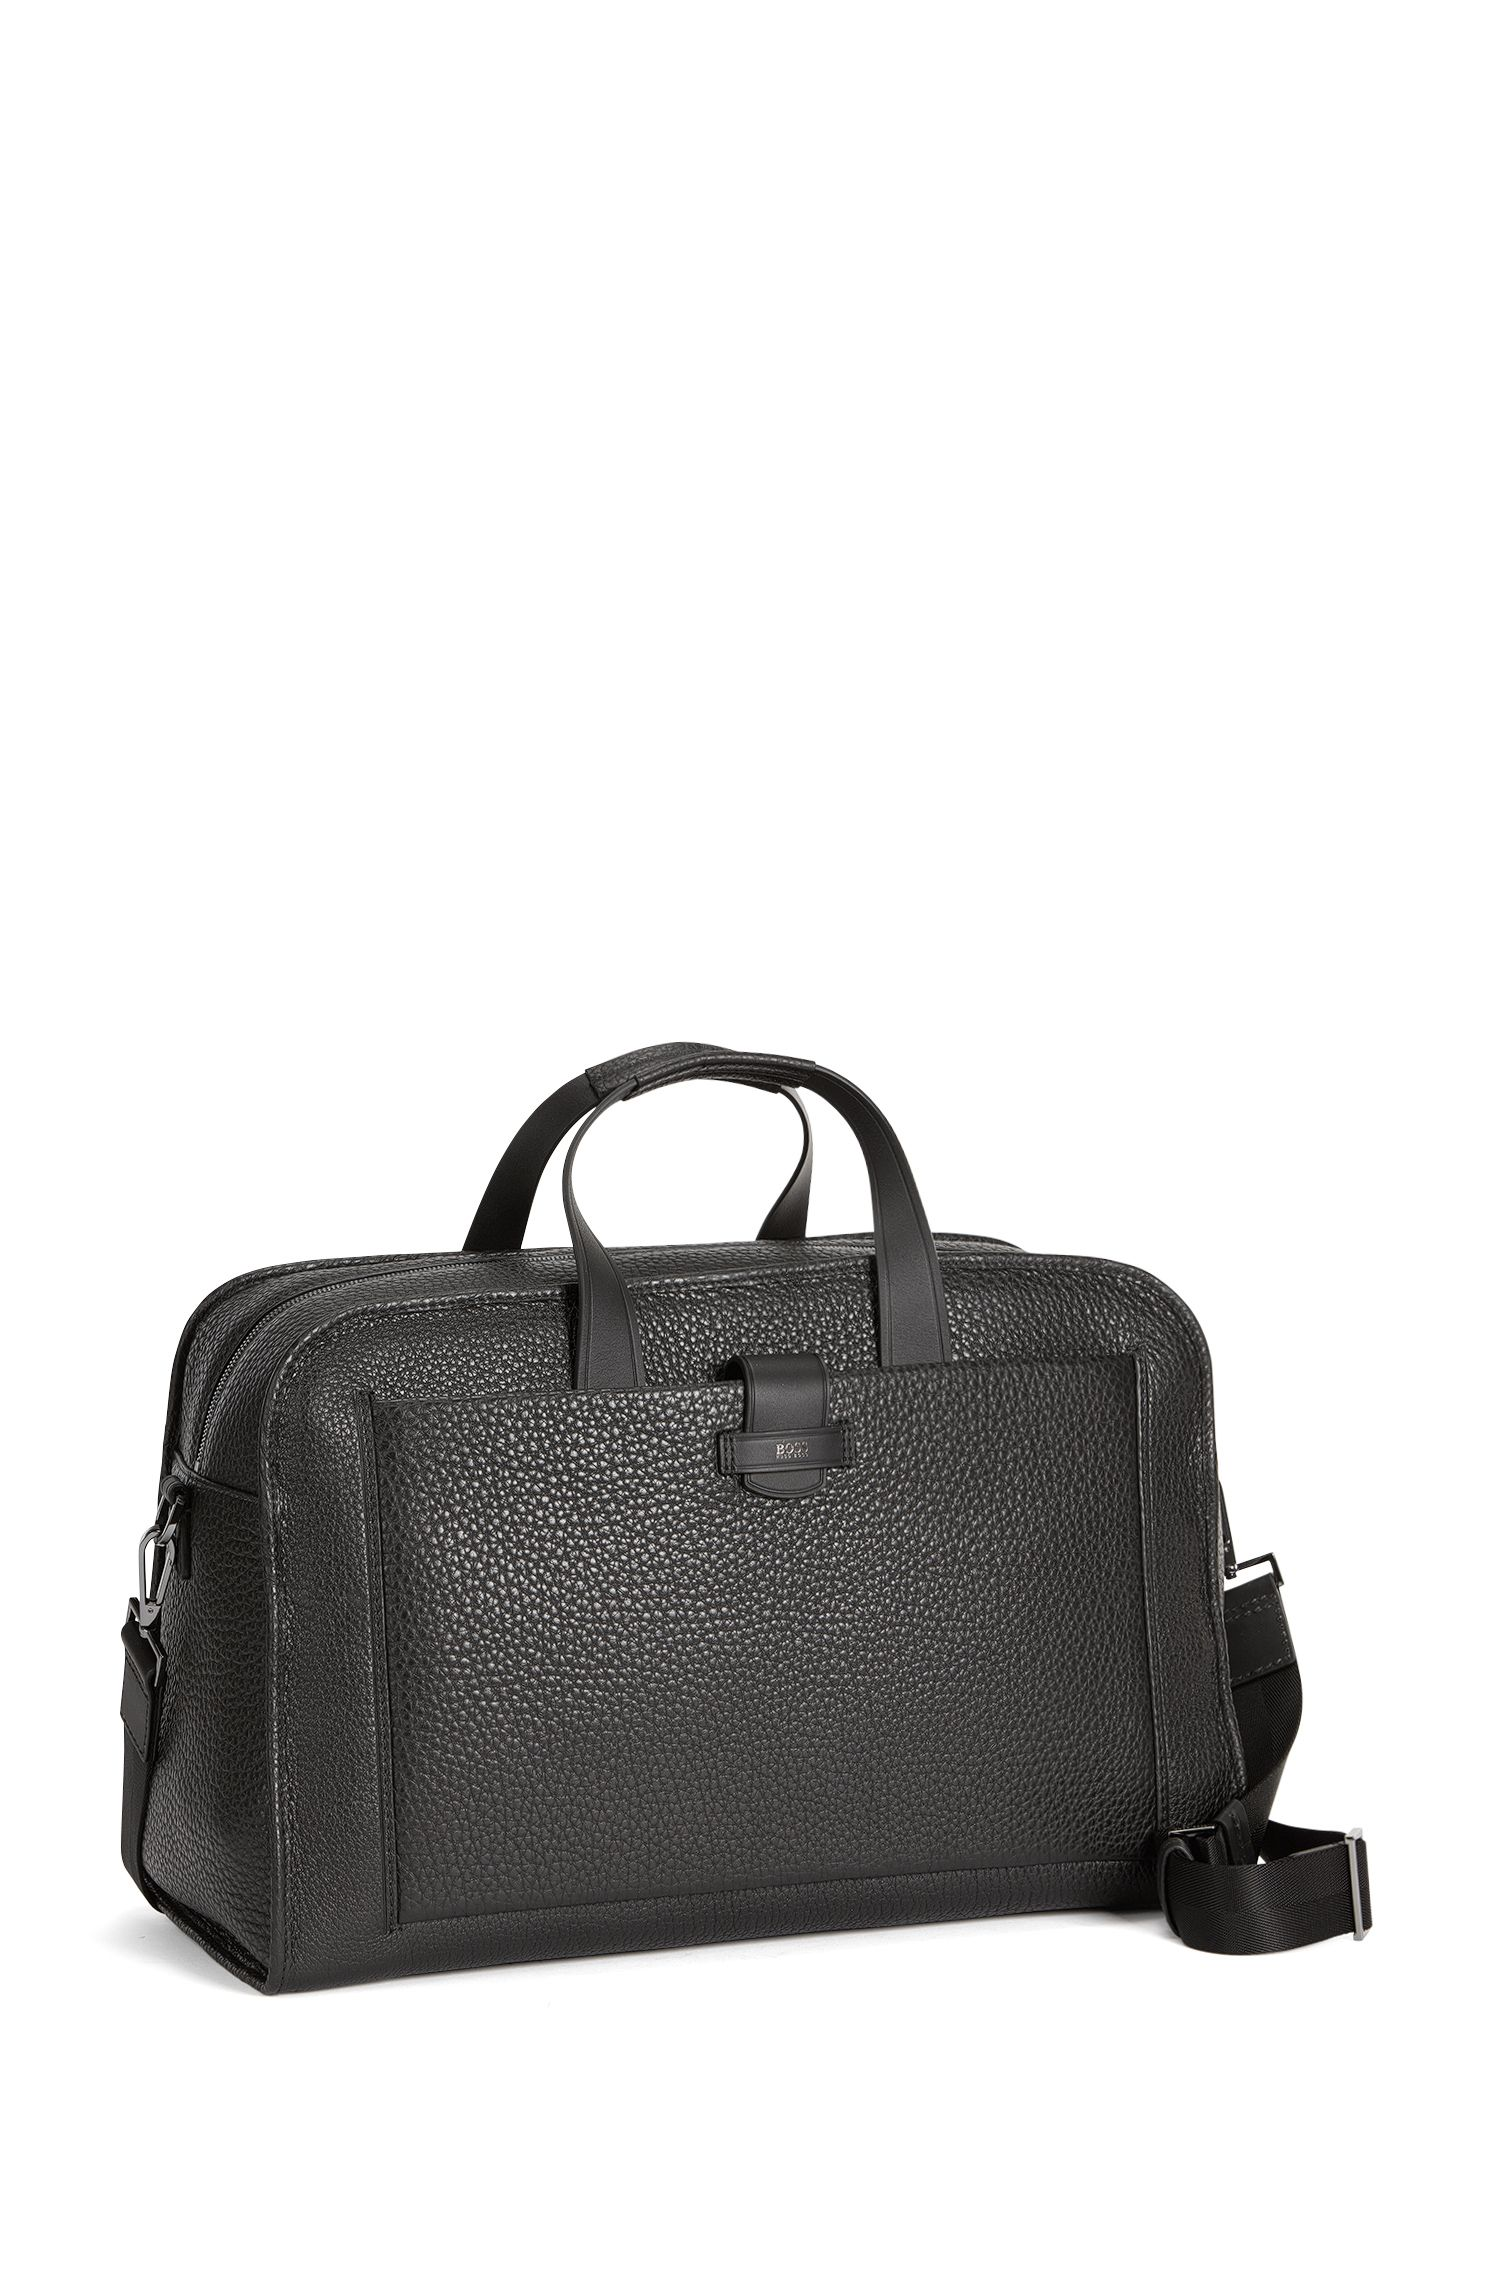 Top-Grain Leather Bag | Varenne Holdall, Black